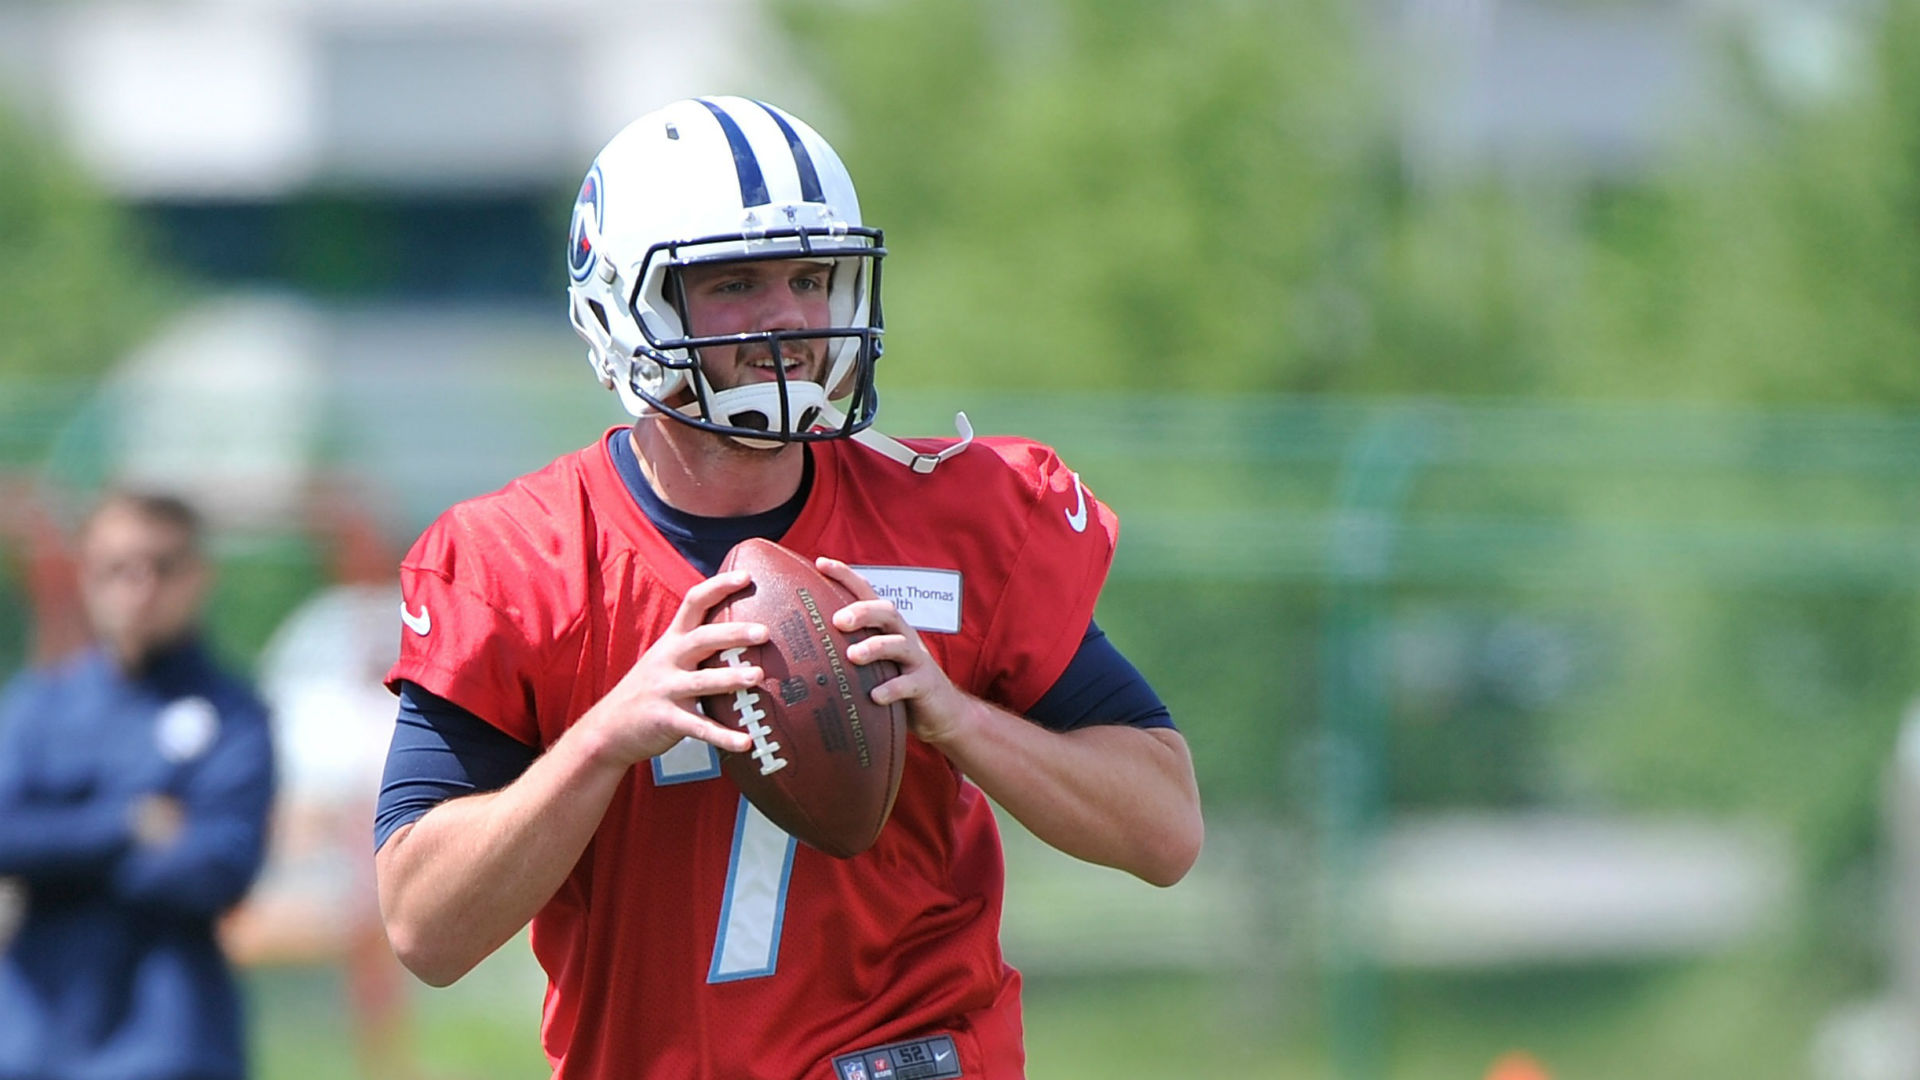 Titans' Zach Mettenberger wore Eddie George jersey after spelling mishap